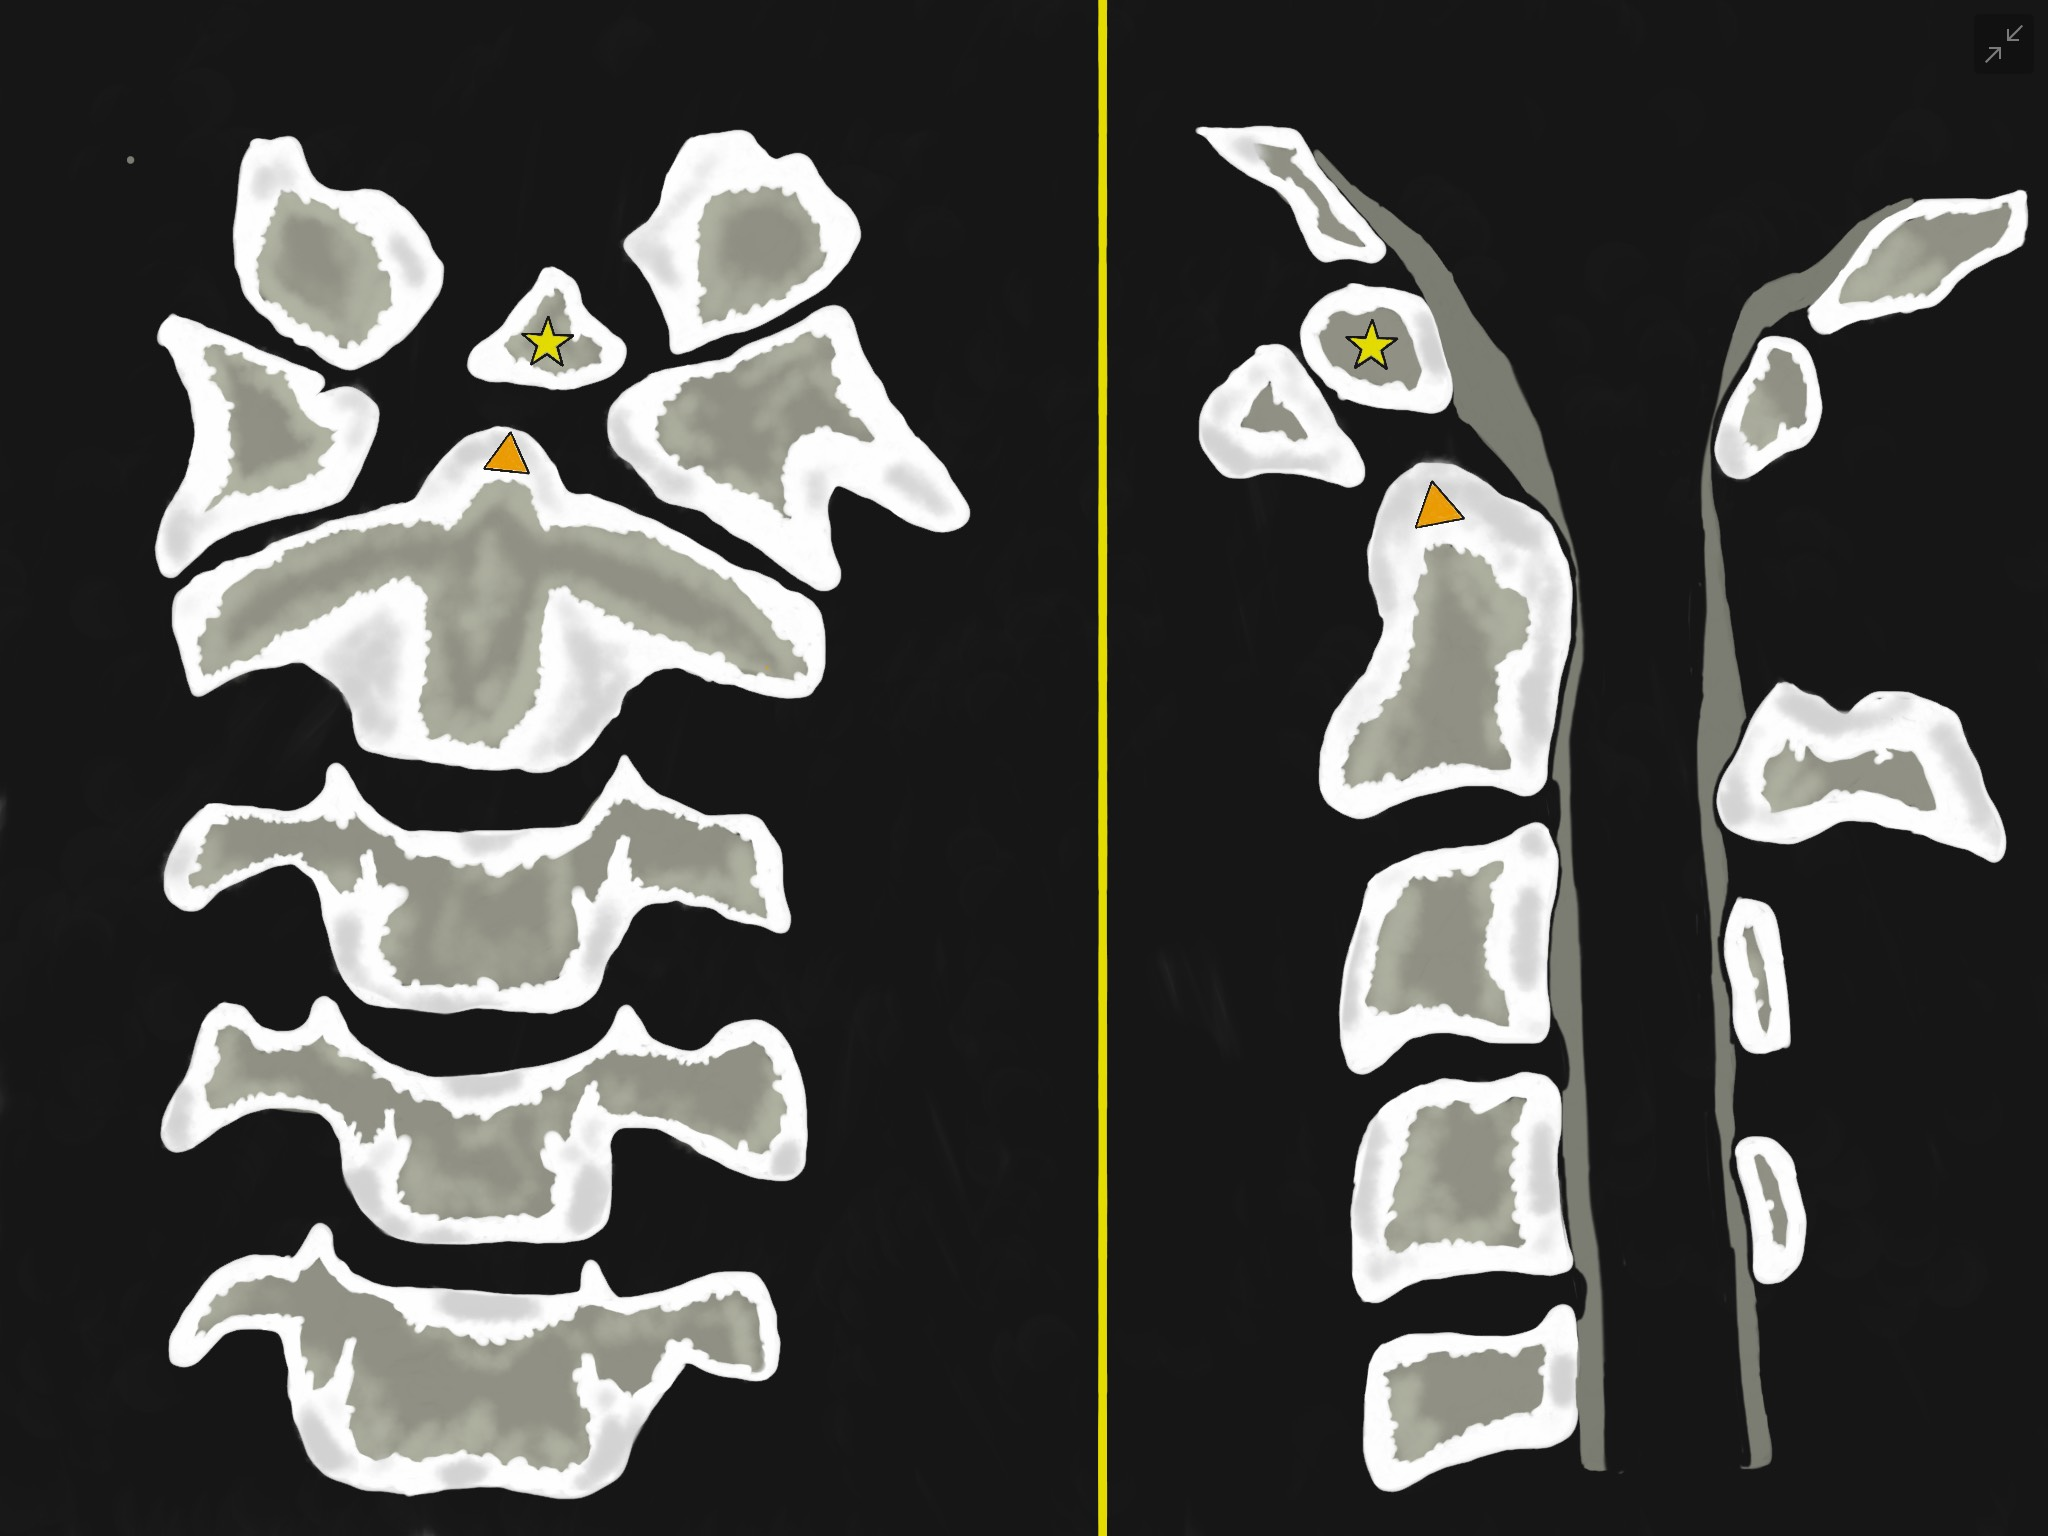 Figure 1 - Illustrations of Os Odontoideum in an anterior-posterior (left-sided image) and lateral (Right-sided image) views. They show an oval or round-shaped ossicle with smooth circumferential cortical margins (yellow star) representing a hypoplastic odontoid process (Orange triangle) that has no continuity with the C2 vertebral body. It often attached to the anterior arch of C1 through an intact transverse ligament.